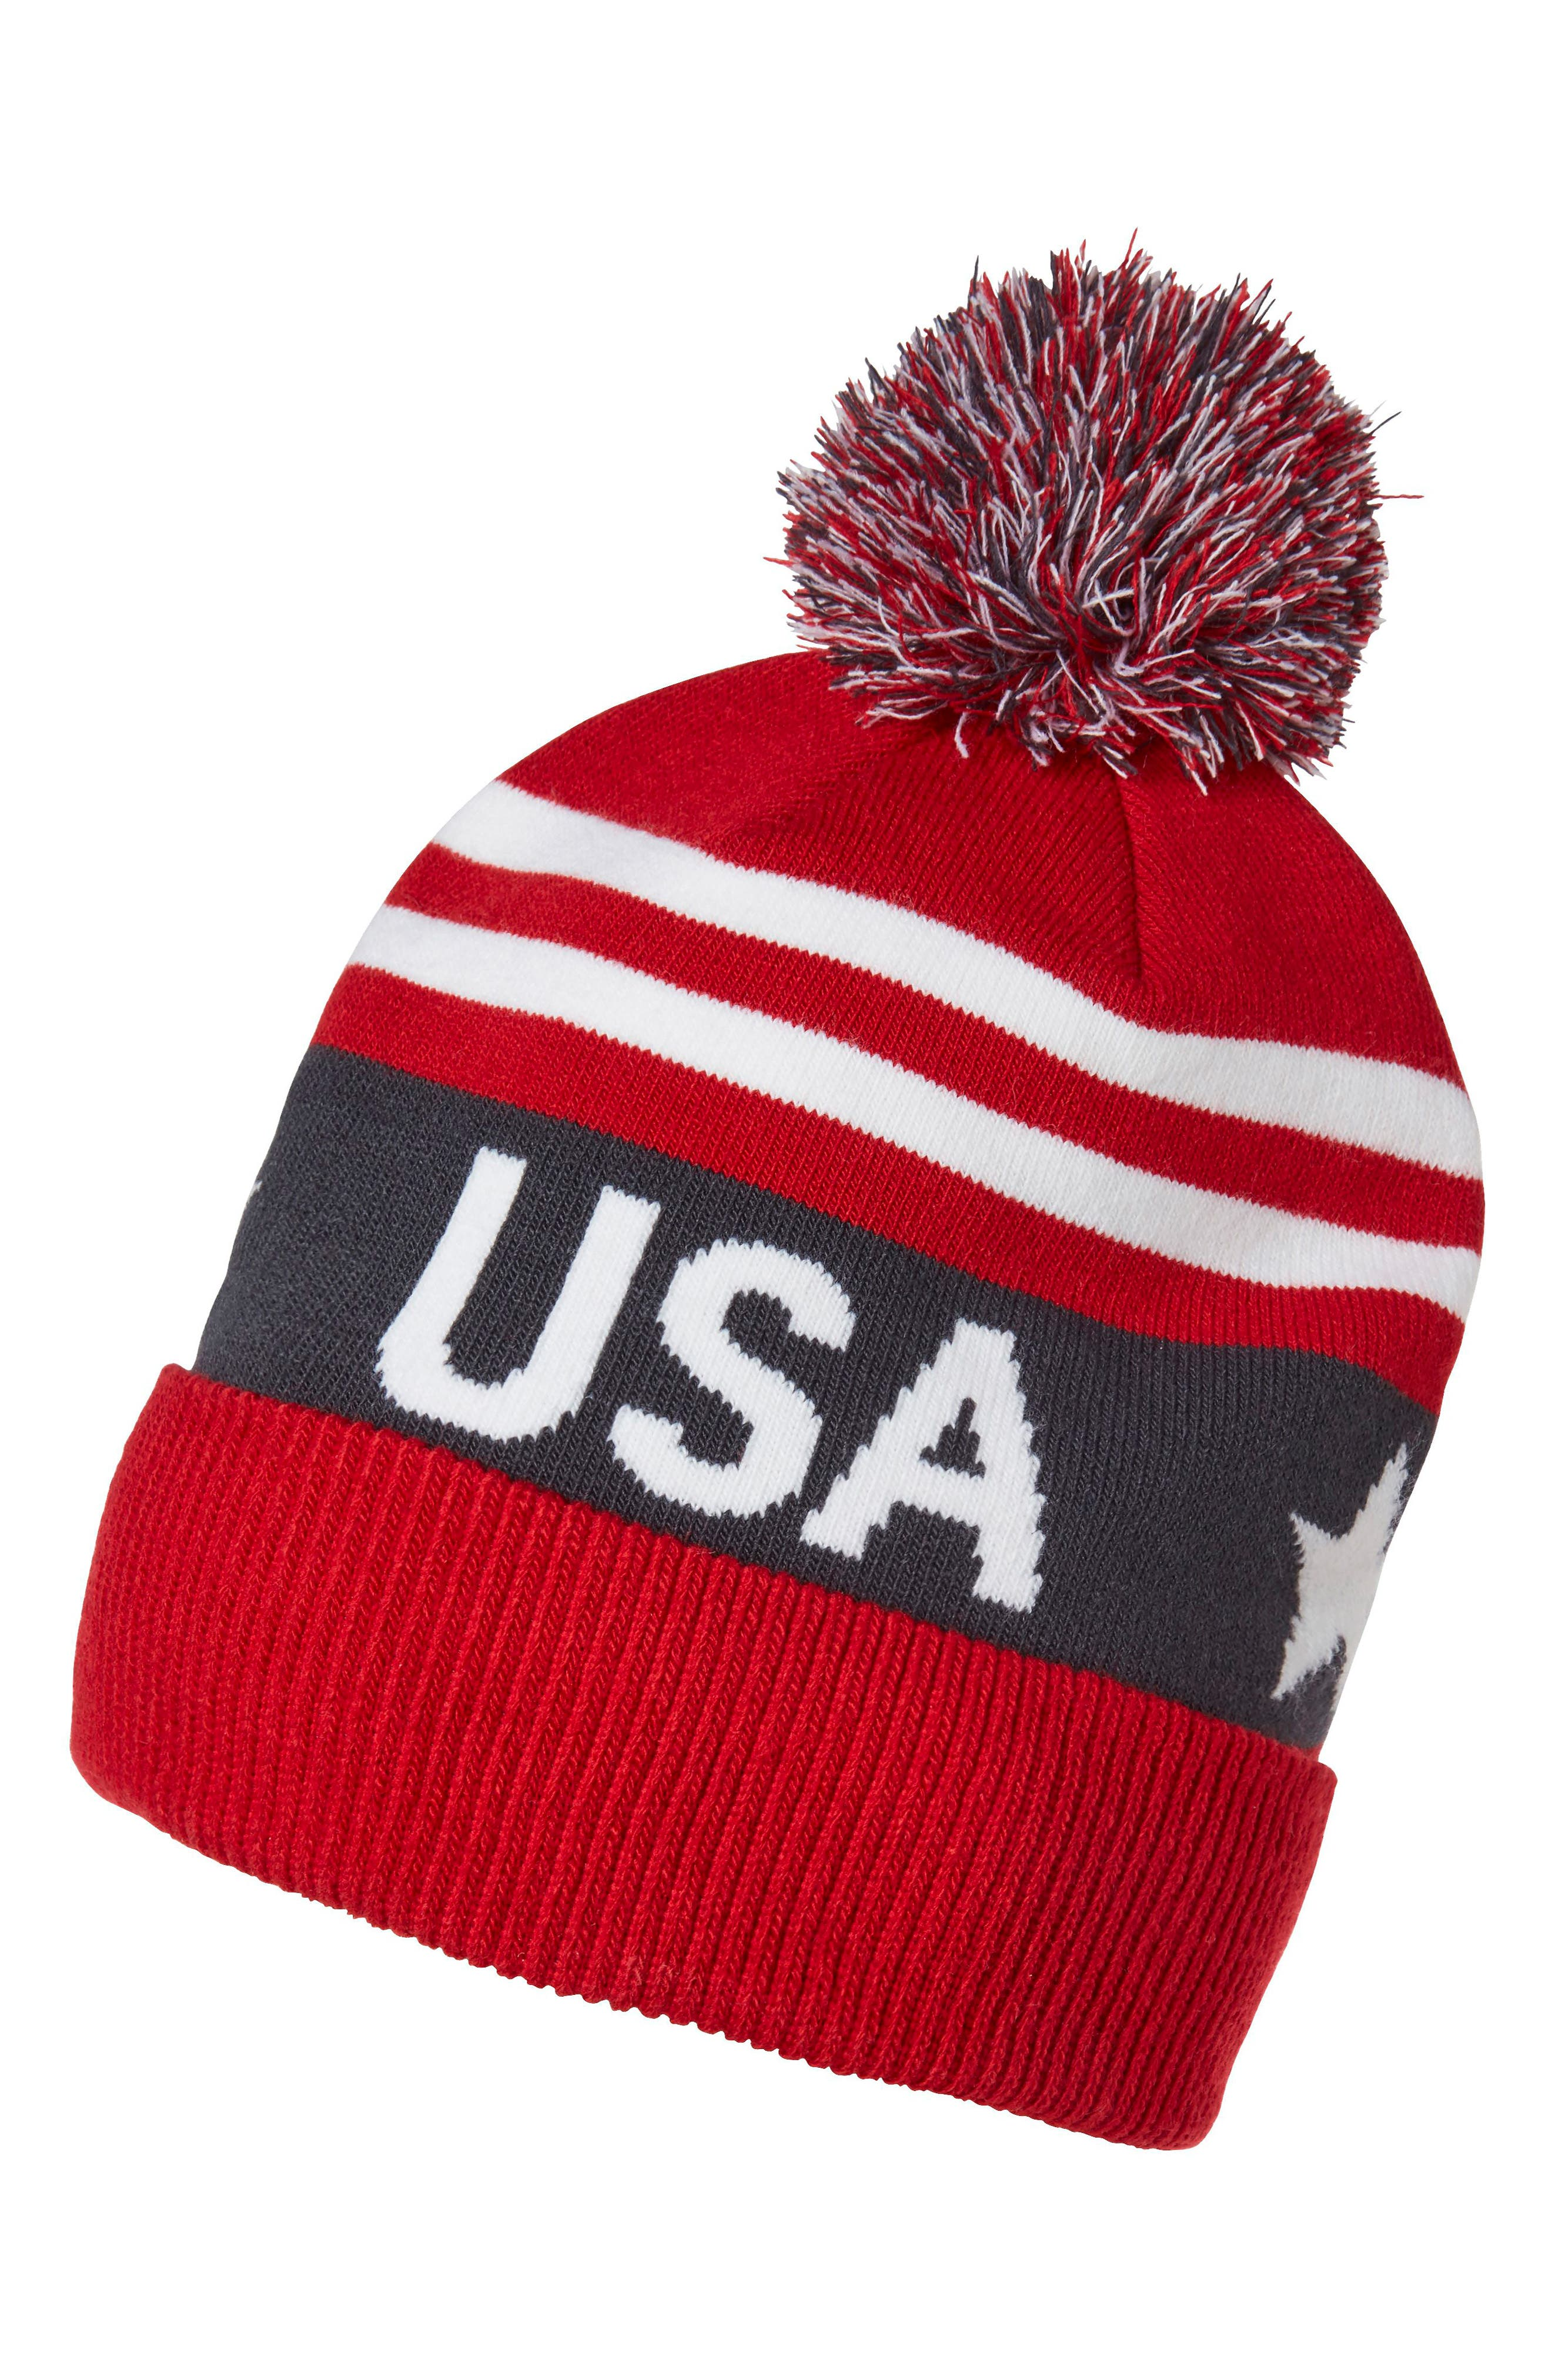 Going For Gold Knit Cap & Mittens Gift Set,                             Alternate thumbnail 2, color,                             Olympian Blue/ Usa